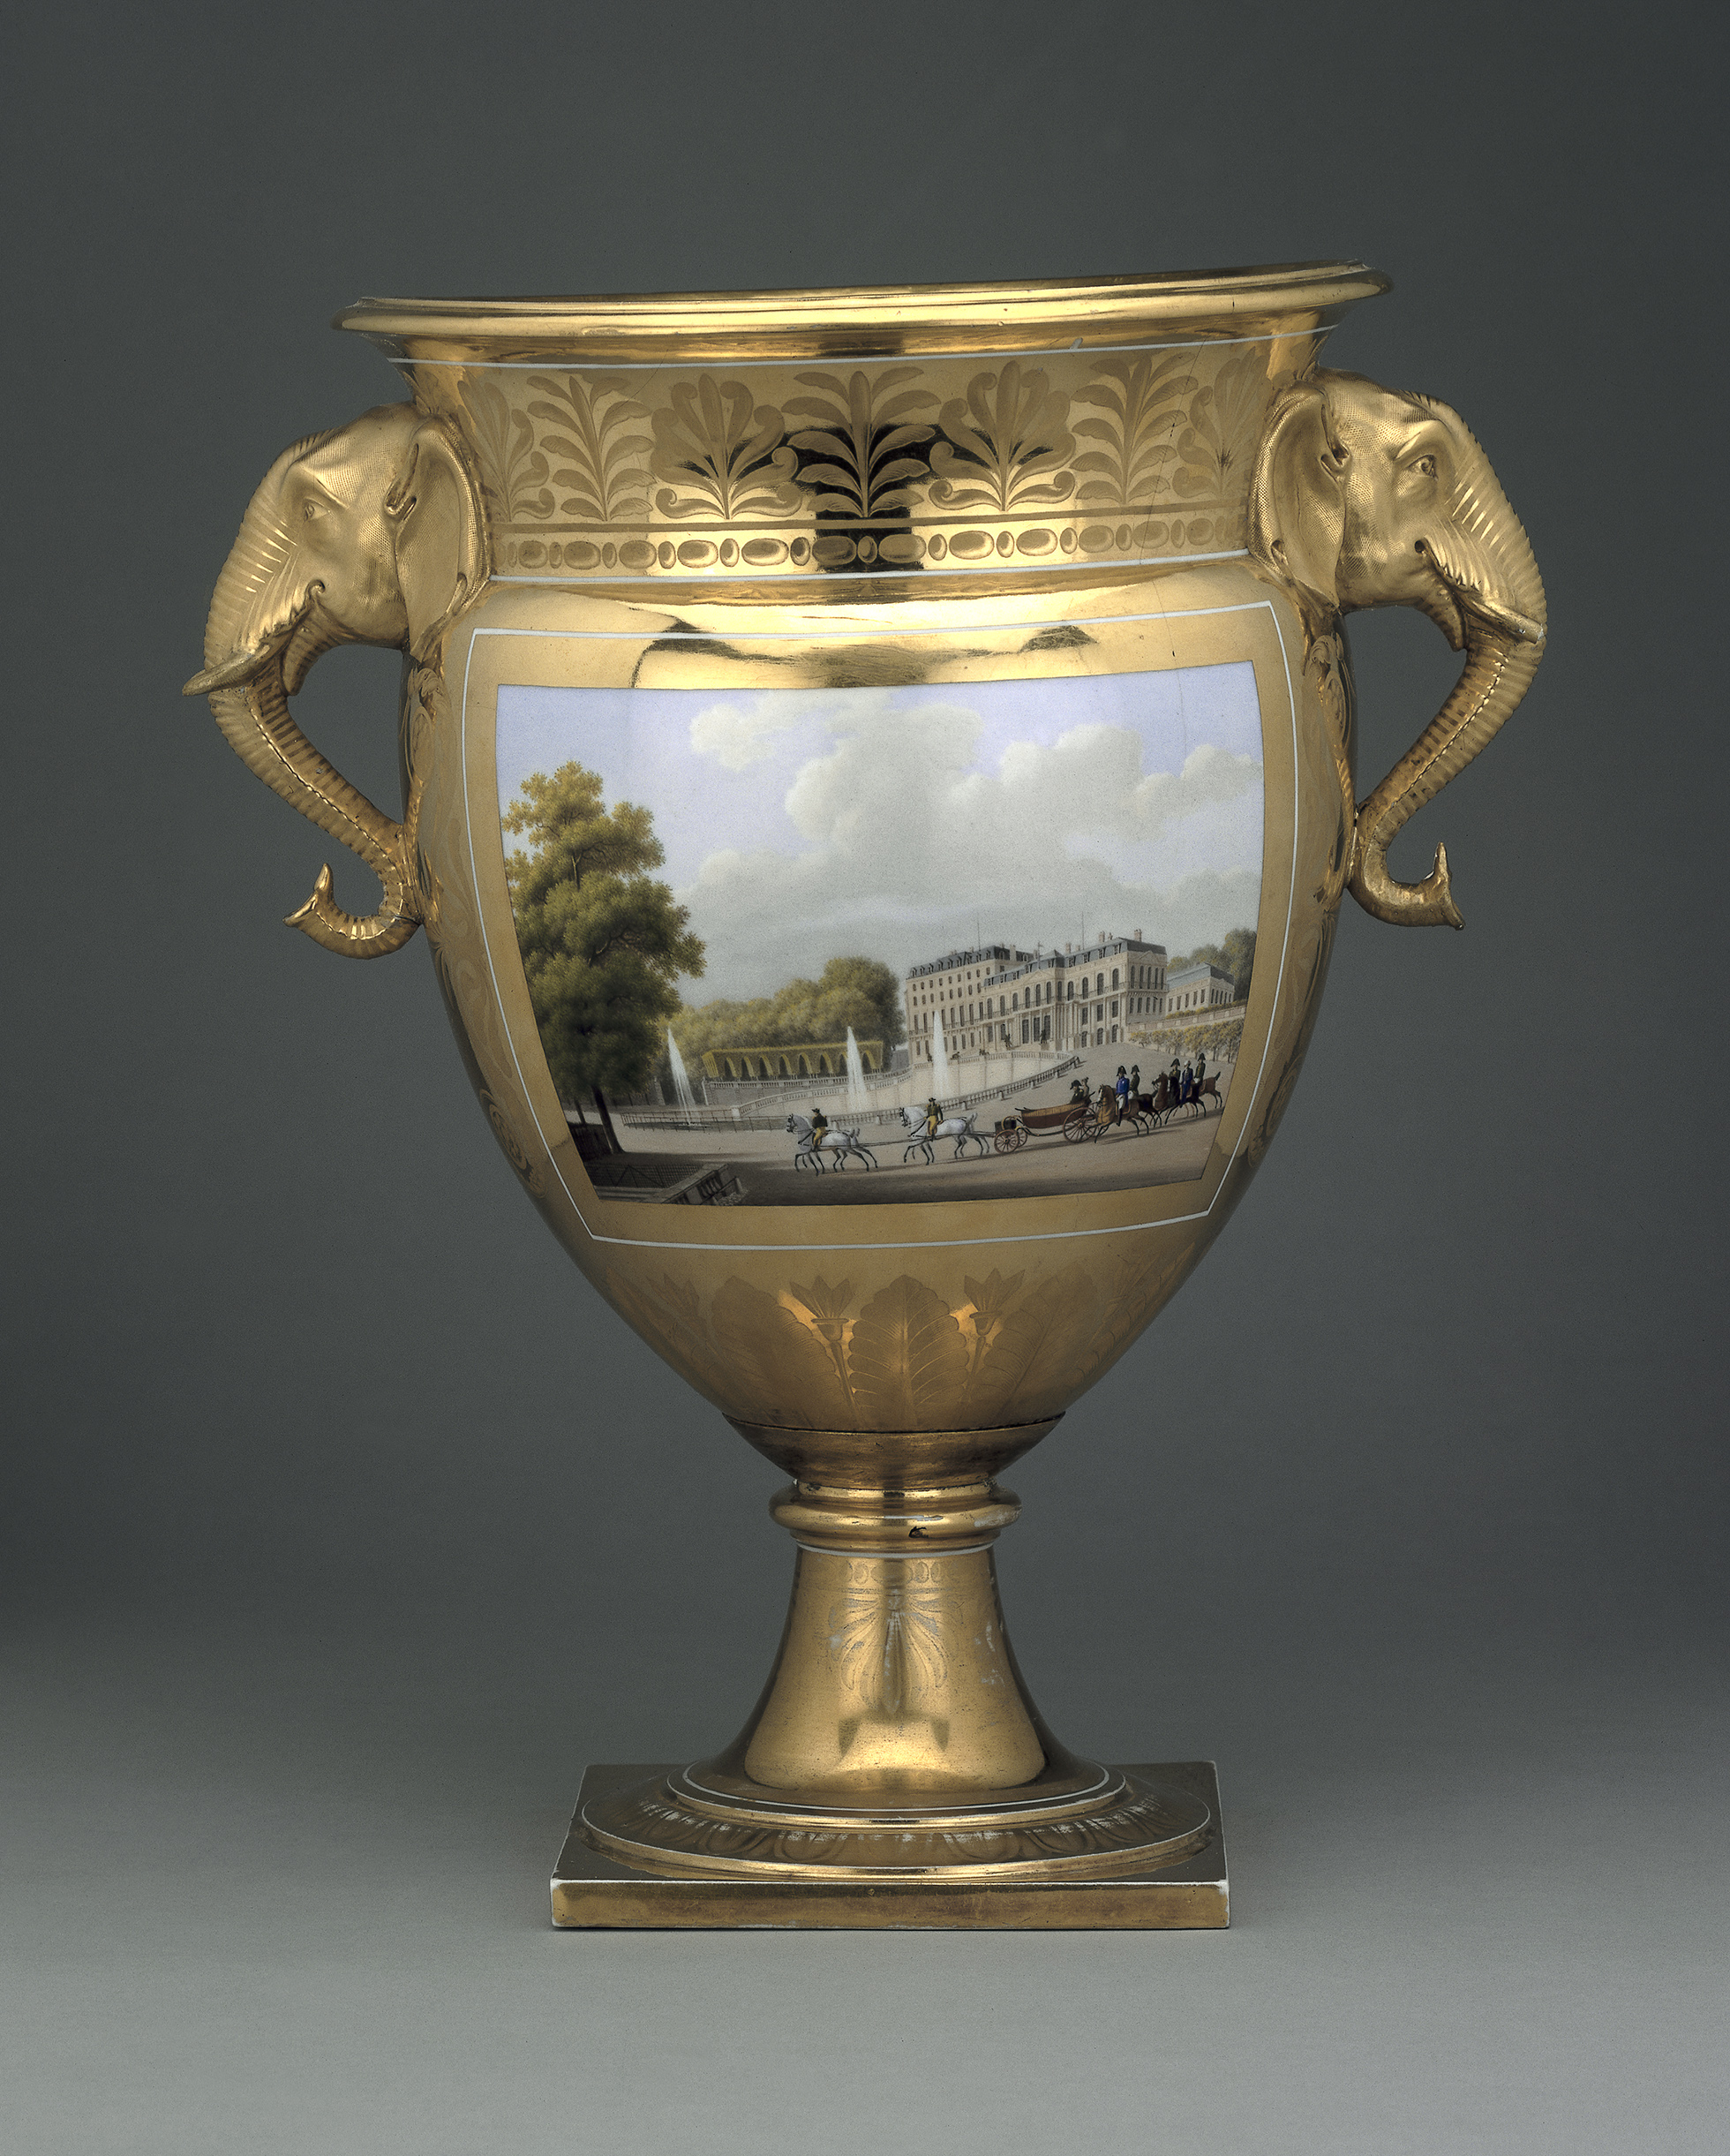 A photograph of a porcelain ice-pail, which is in the form of a large gold cup with elephant heads and trunks as 'handles'. An urban scene with buildings and carriages can be seen on the front of the object.